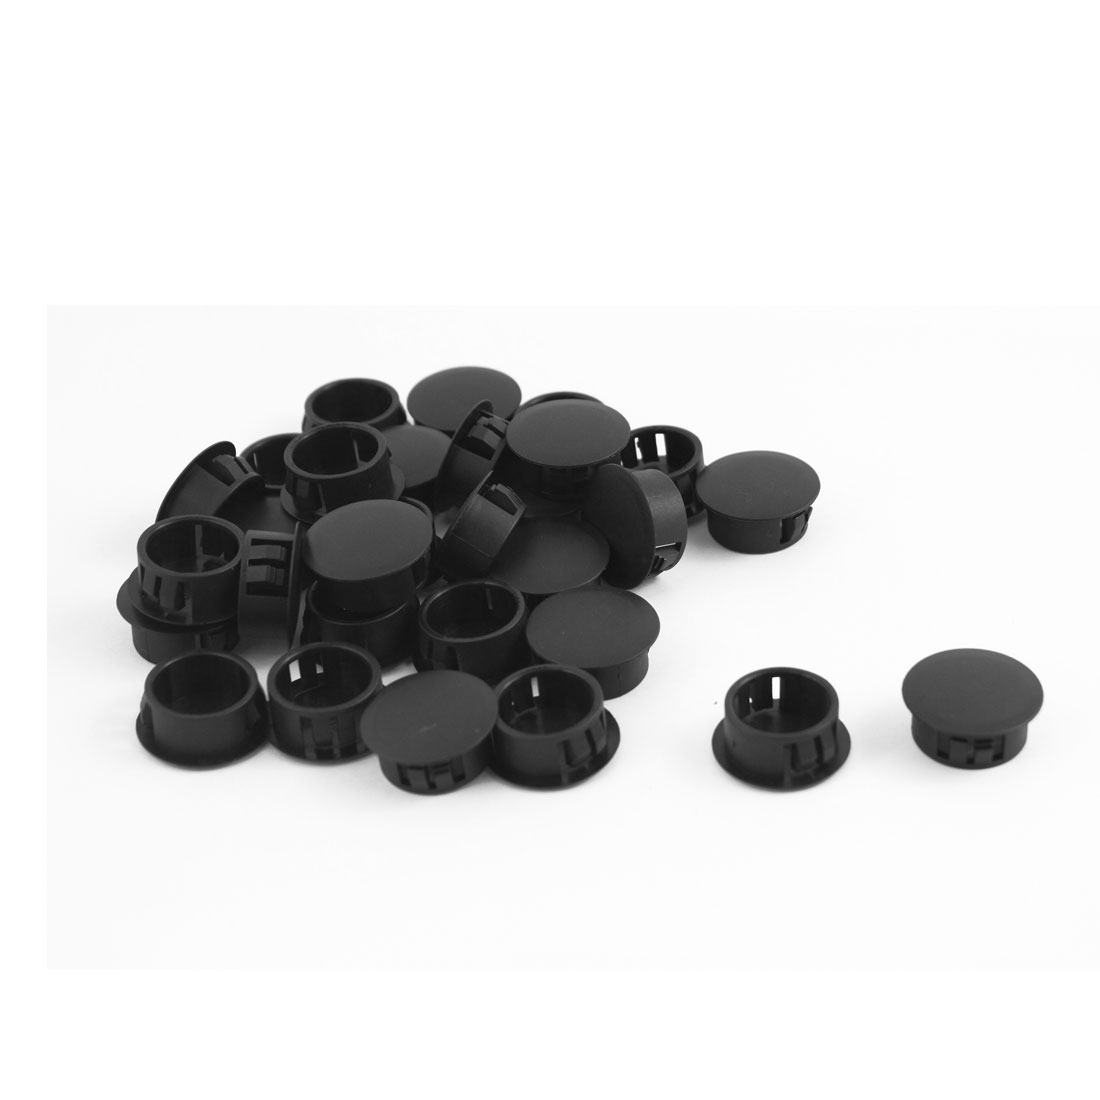 30 Pieces Black Snap in Mount Locking Hole Plugs 19mmx23mmx10mm